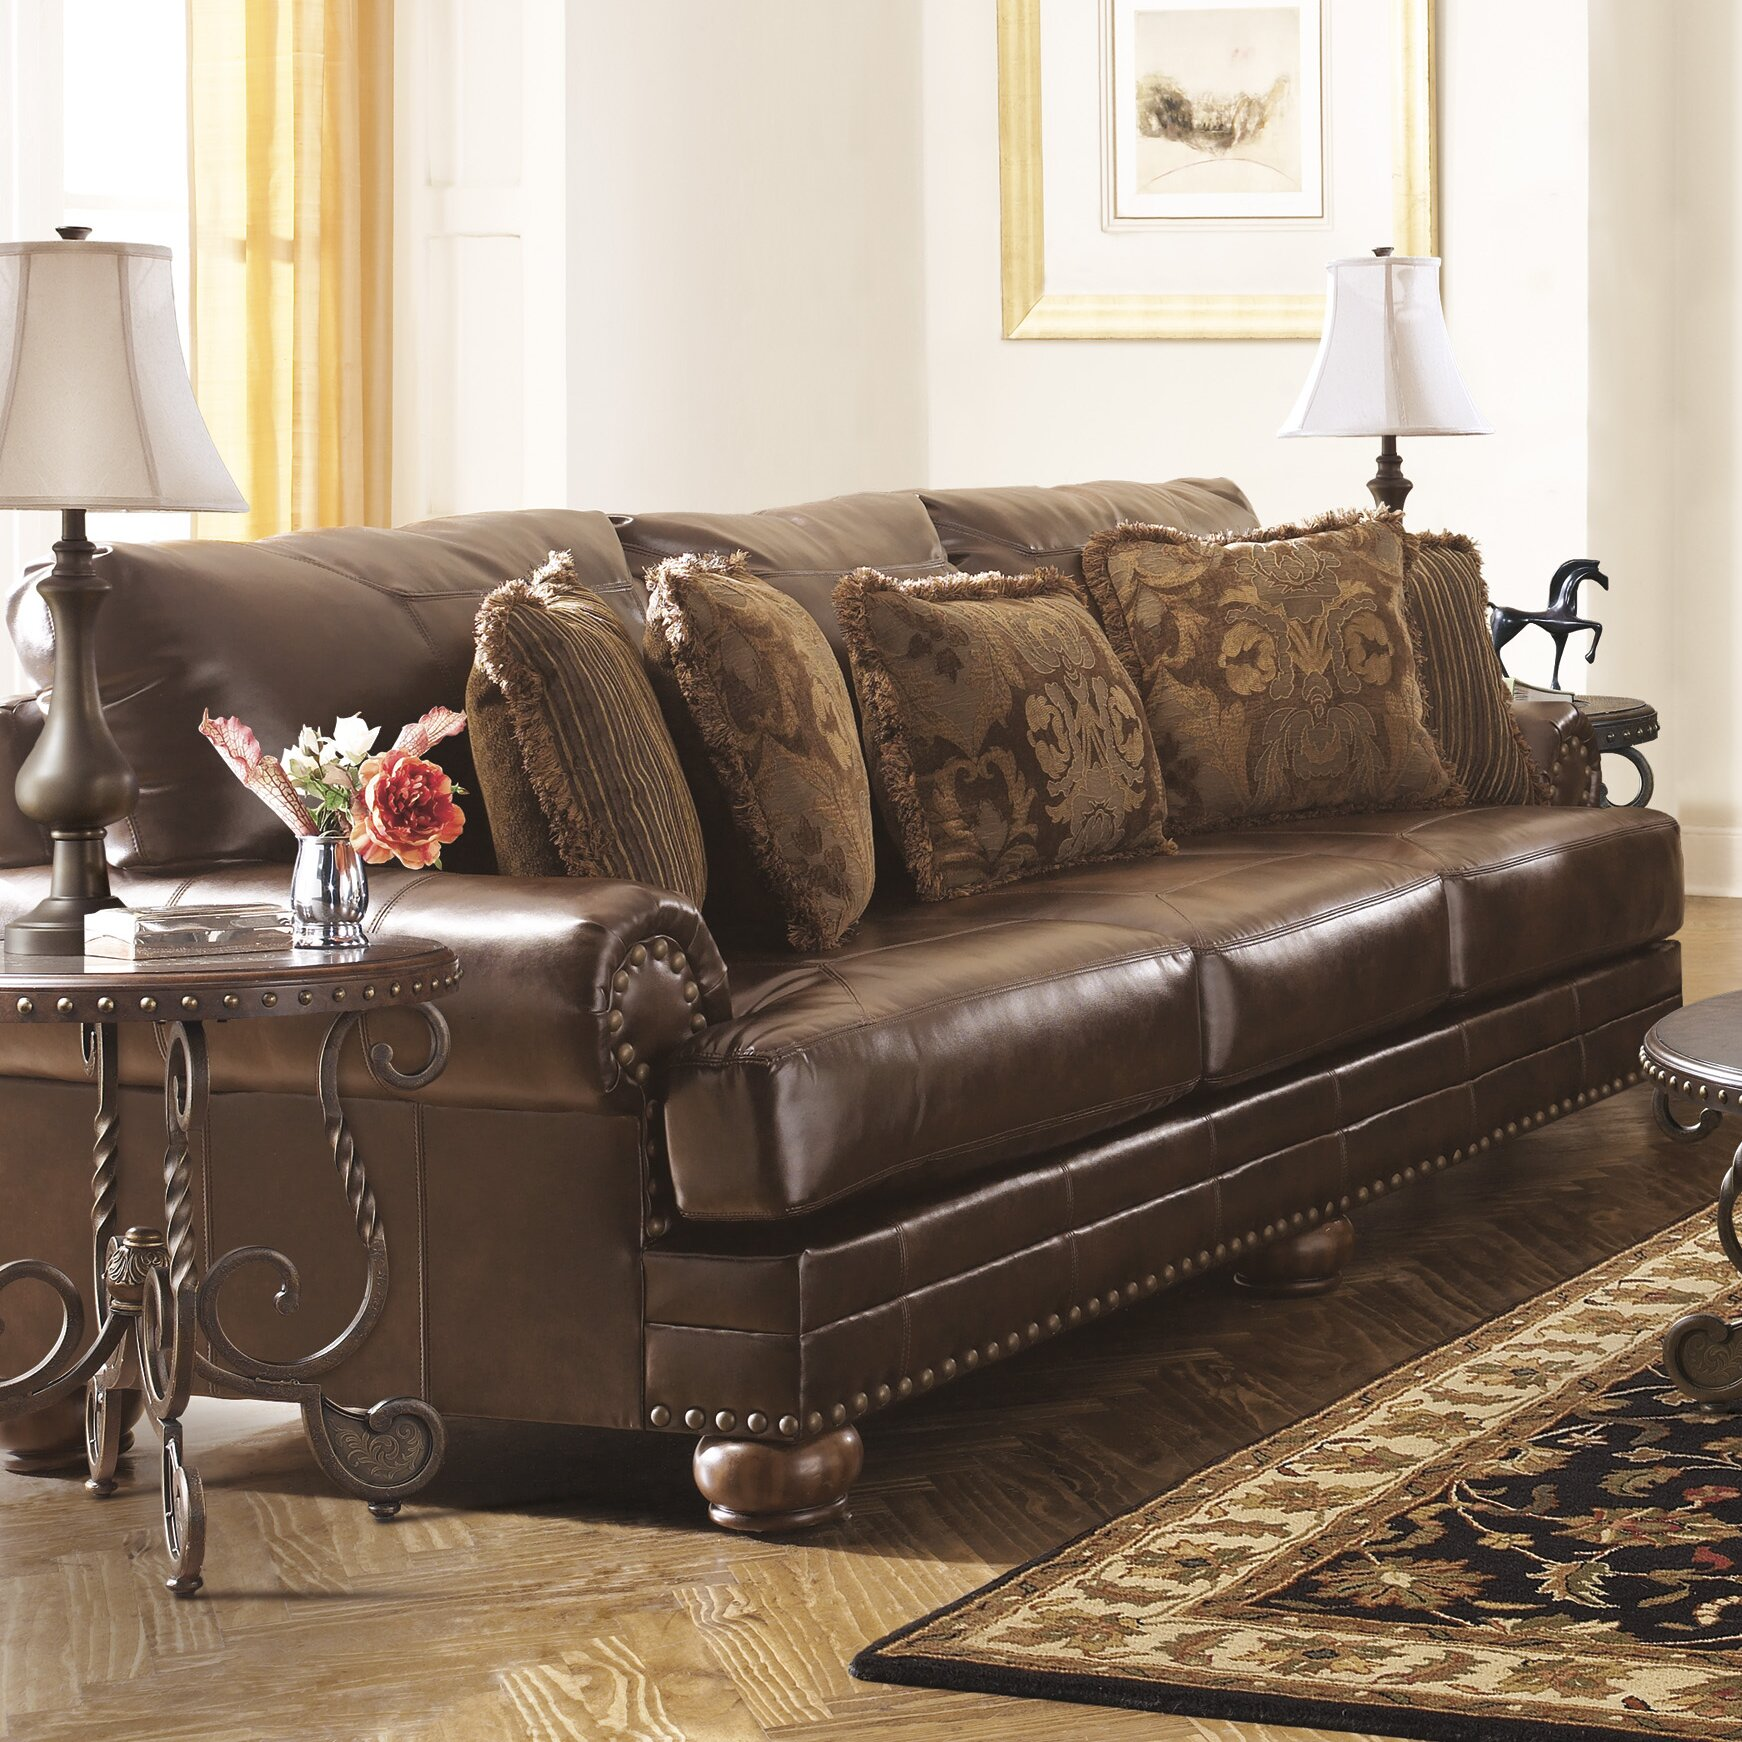 Hasley Furniture: Signature Design By Ashley Leighton Leather Sofa & Reviews